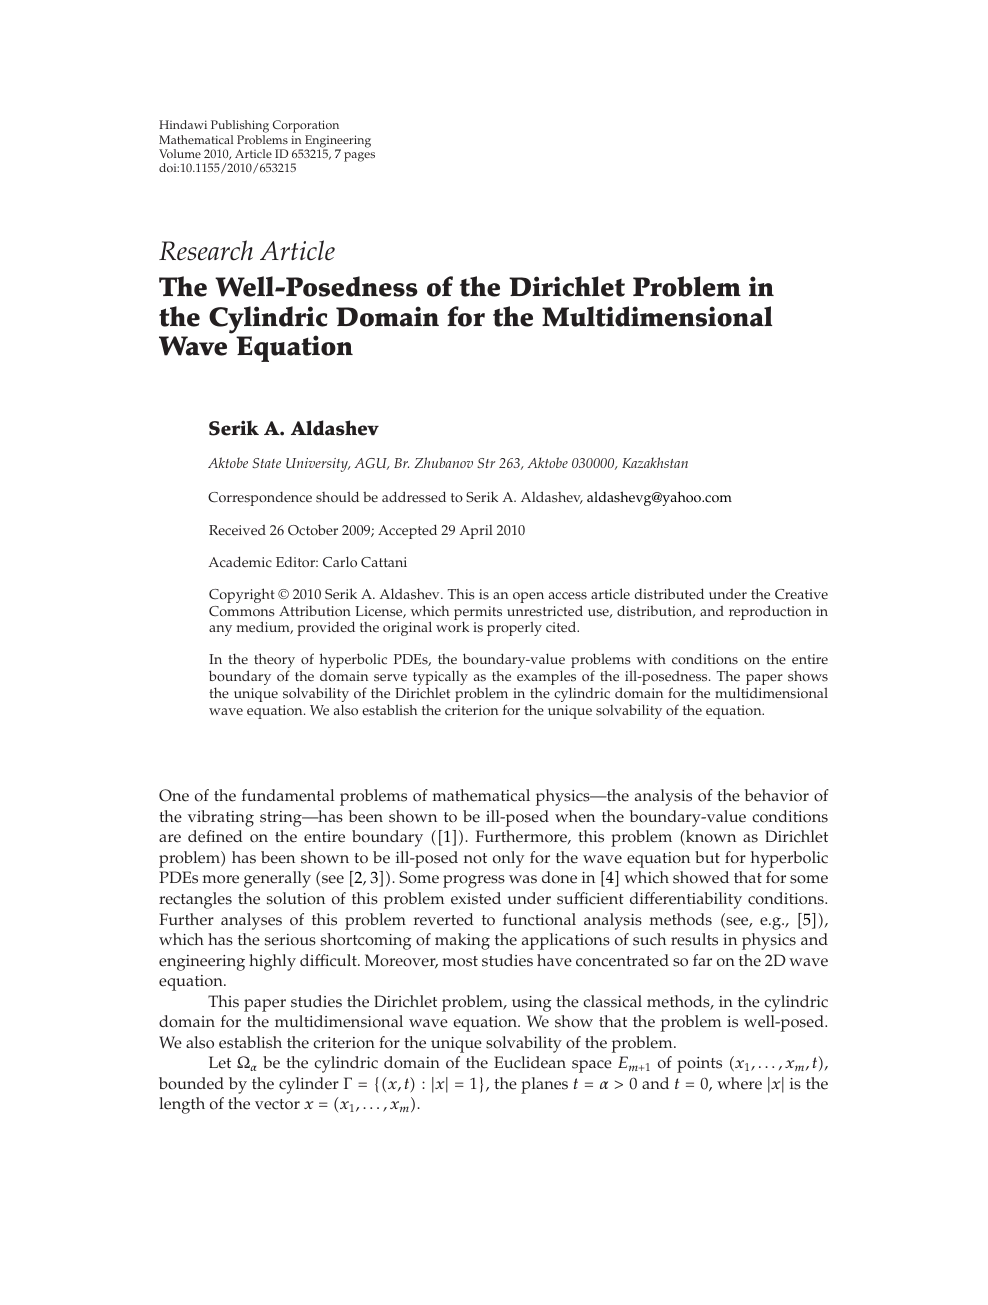 The Well-Posedness of the Dirichlet Problem in the Cylindric Domain